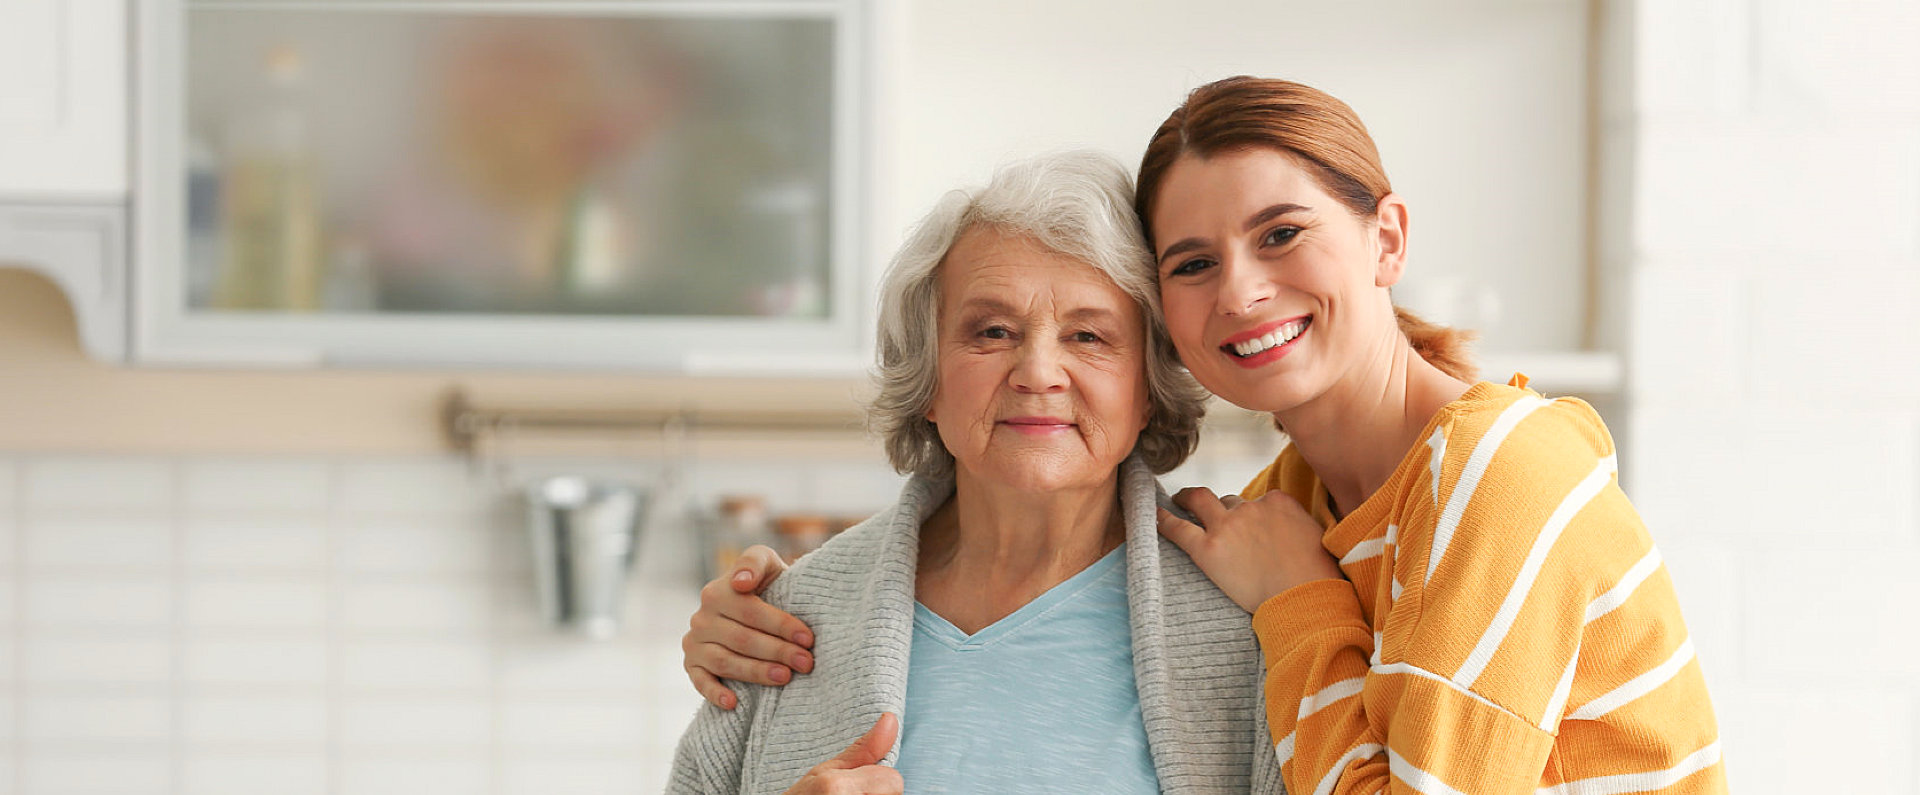 elder woman and her daughter smiling